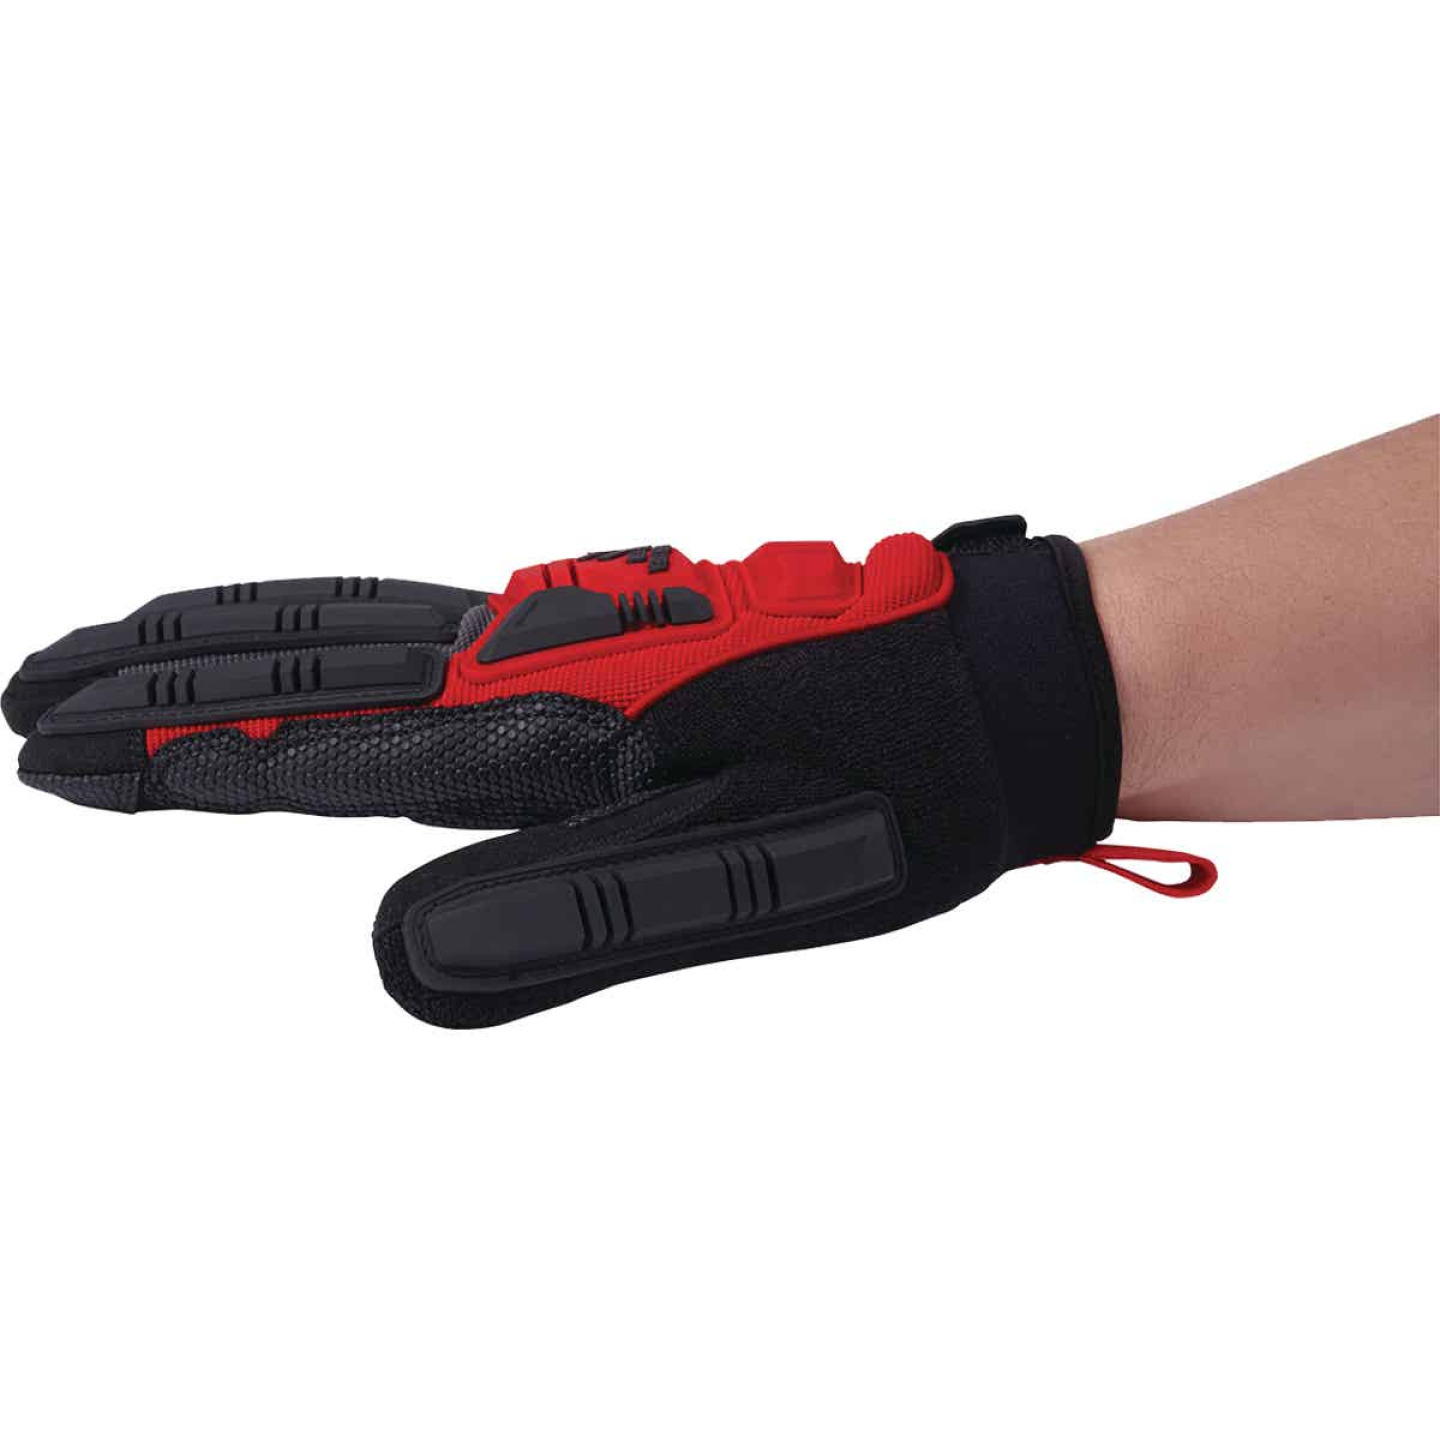 Milwaukee Men's Large Synthetic Leather Impact Demolition Glove Image 4